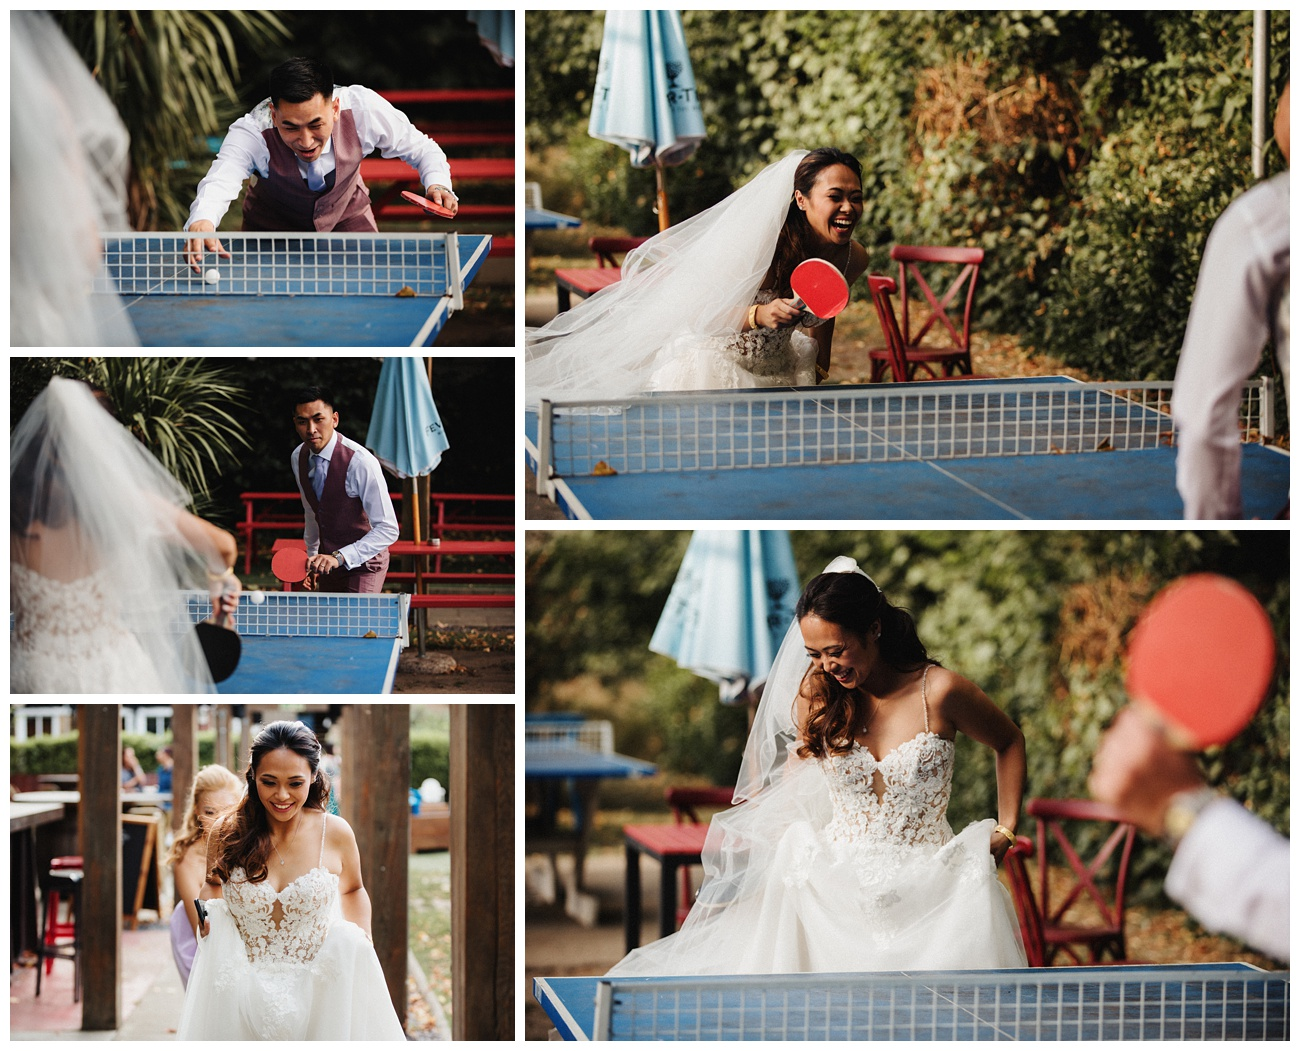 The bride and groom play table tennis in the gardens